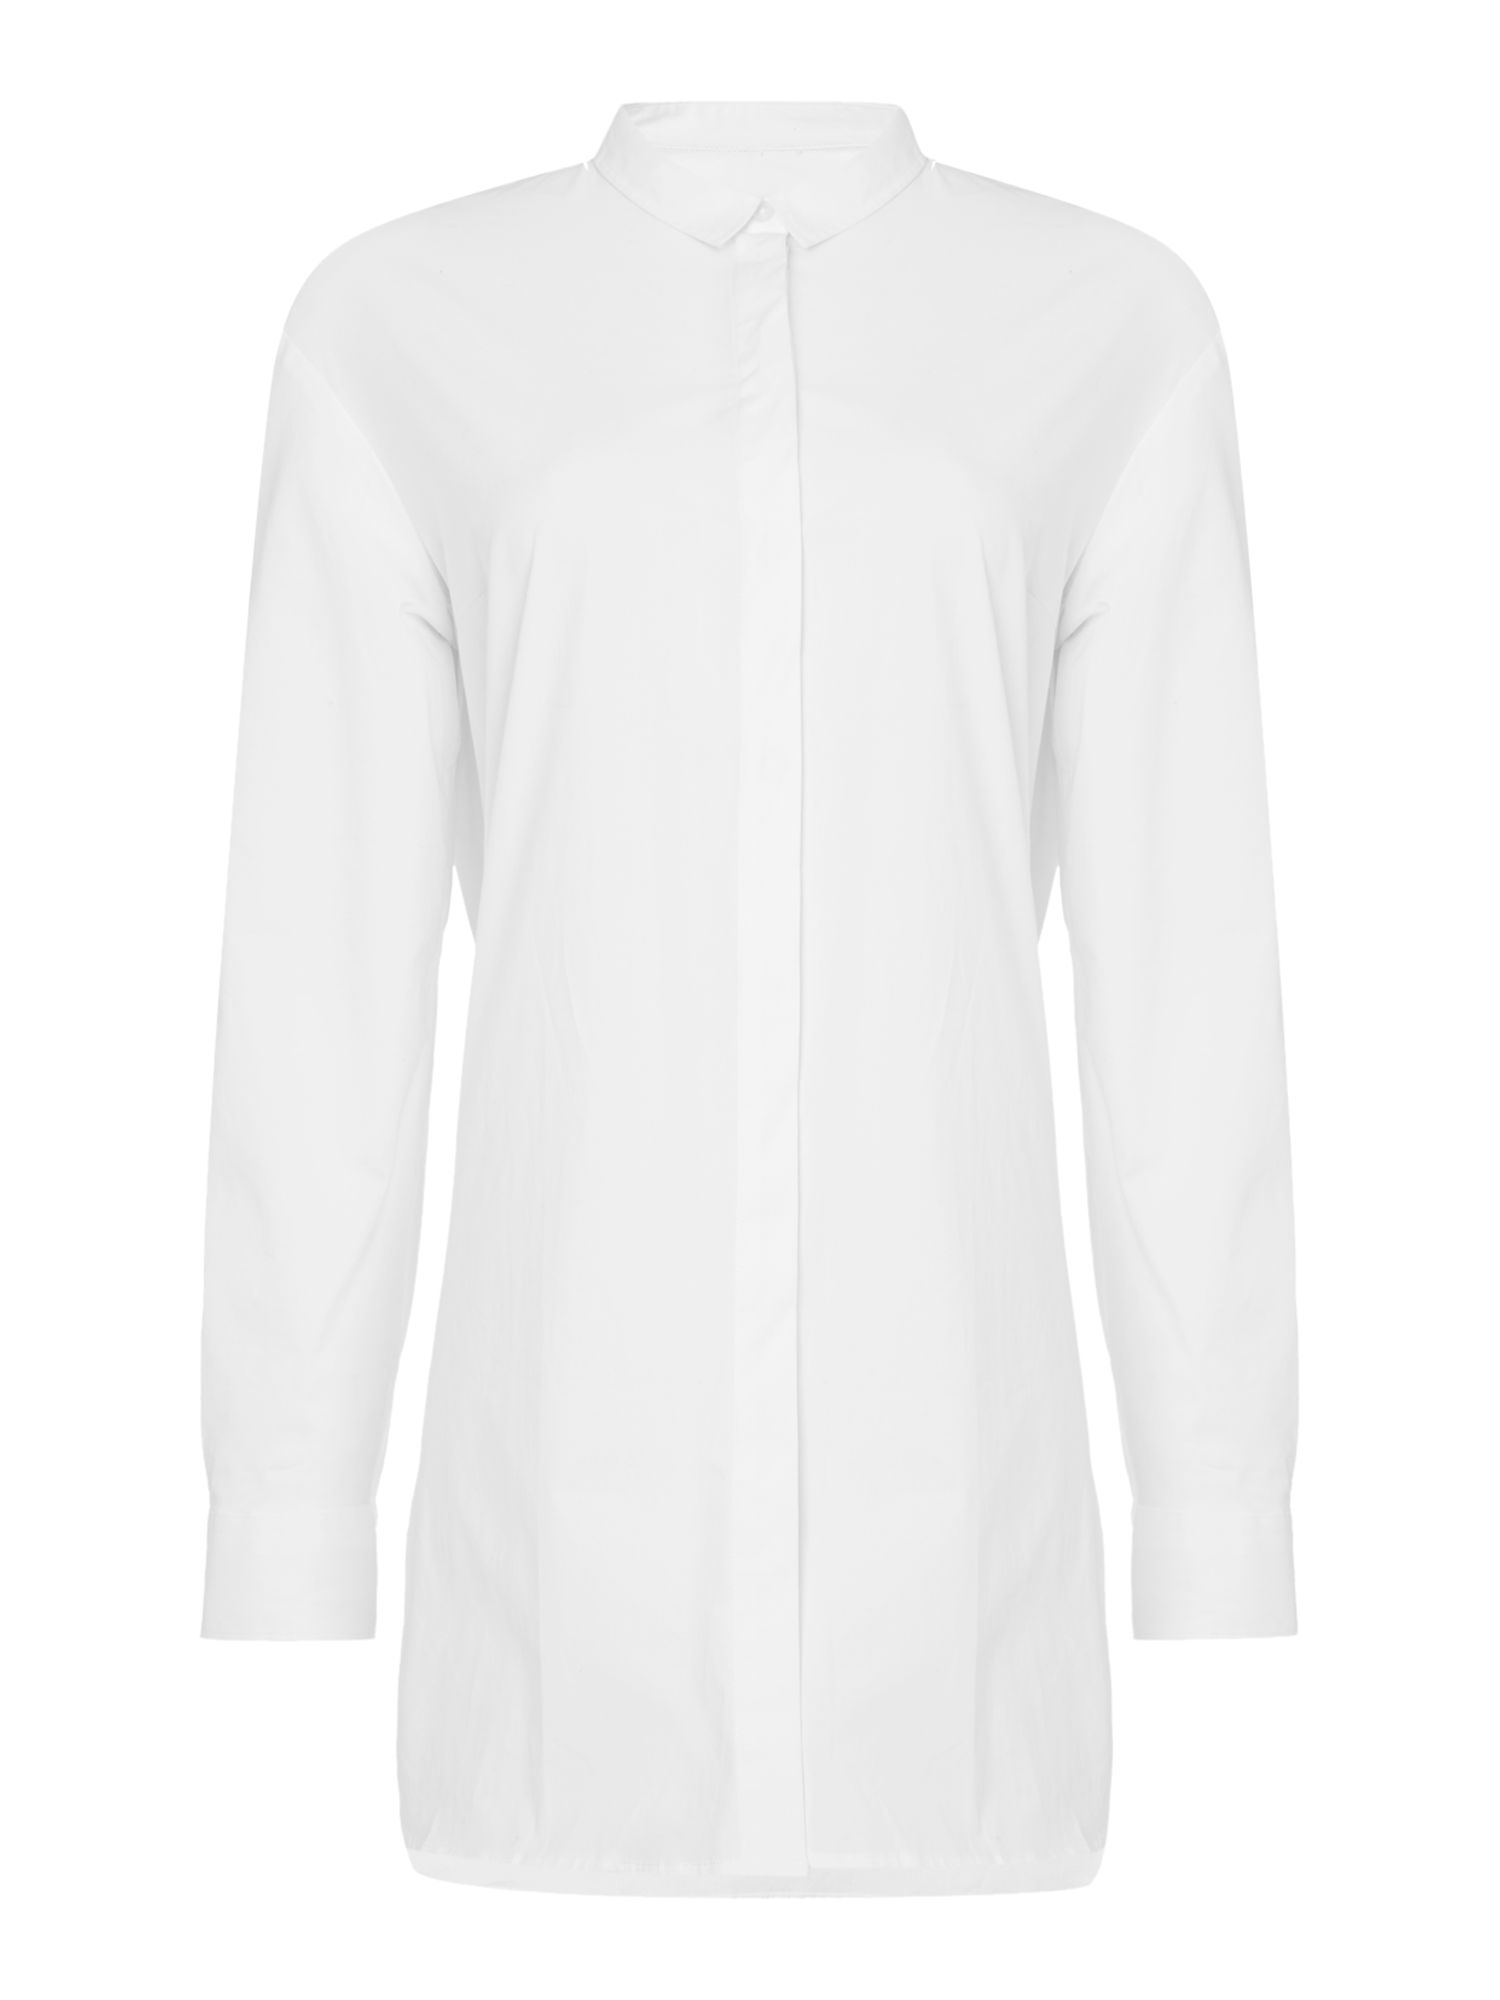 Oui Long shirt, White